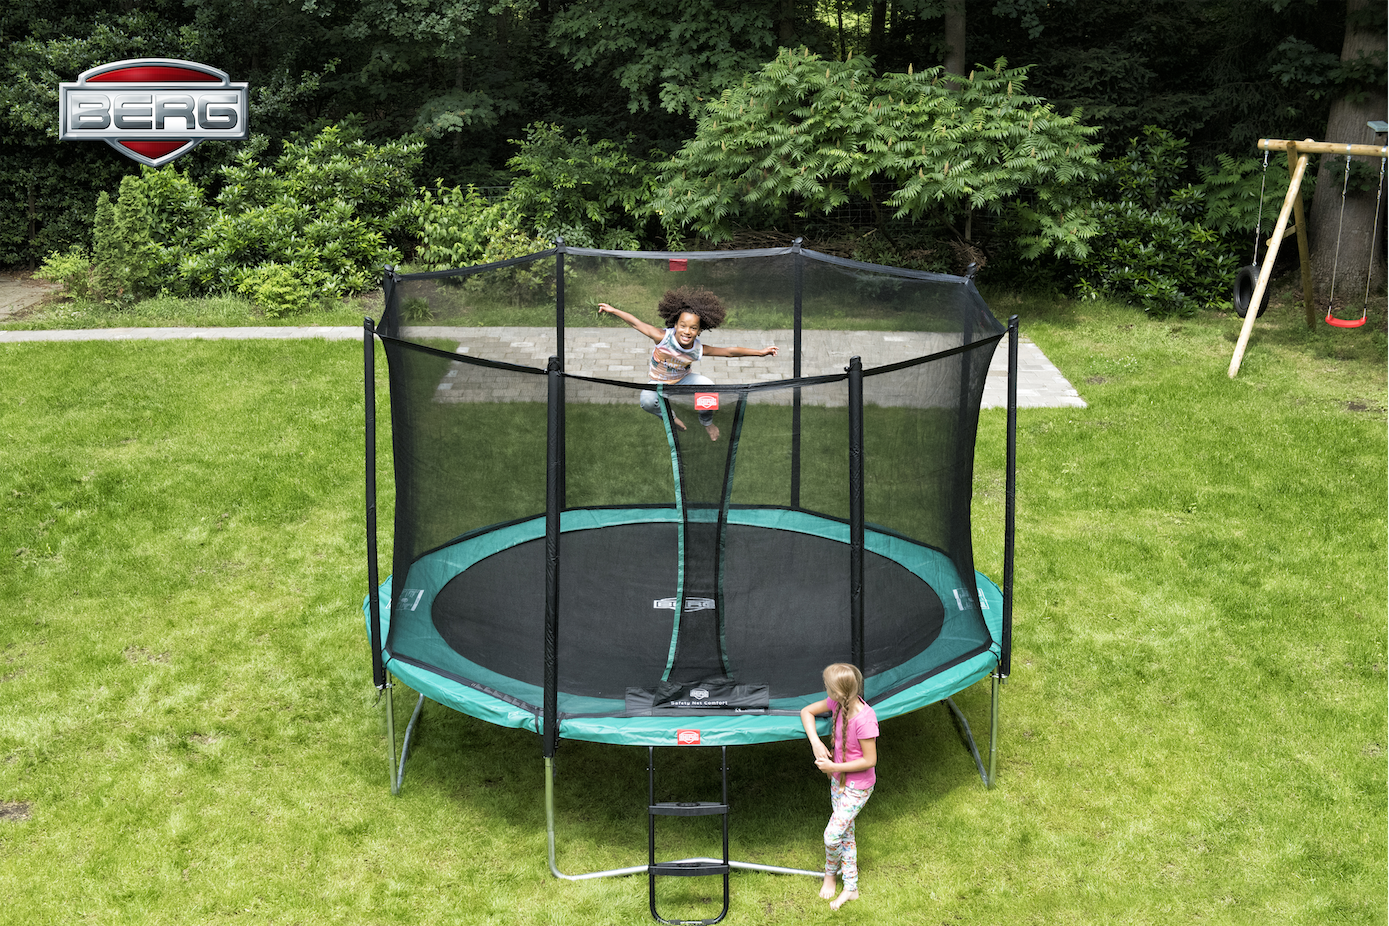 Berg Favorit Tattoo 430 + Safety Net Comfort trampoline